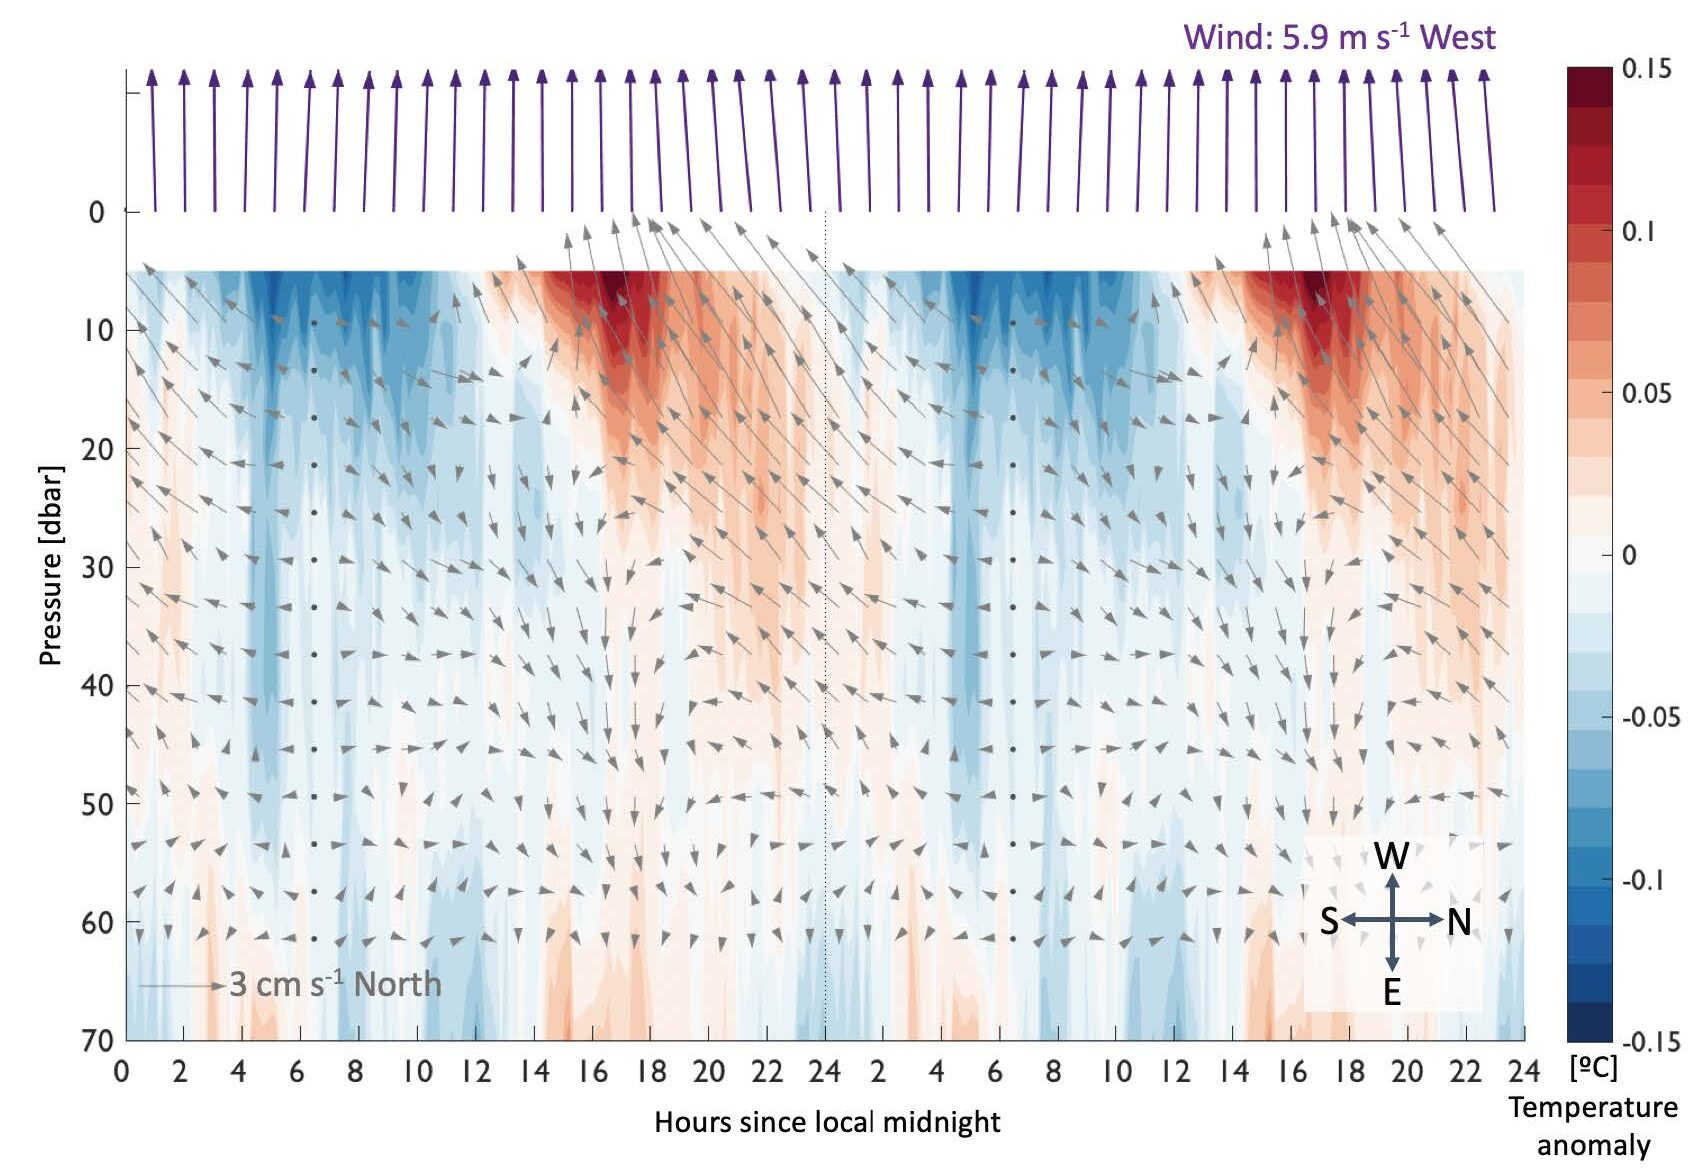 Diurnal anomalies in temperature and ocean current at 0, 155W. Daytime heating (red contours) coincides with daytime currents (grey arrows; shown with respect to the 6:30 am profile) that strengthen and turn towards the direction of the wind (purple arrows). These diurnal anomalies propagate downwards into the evening.